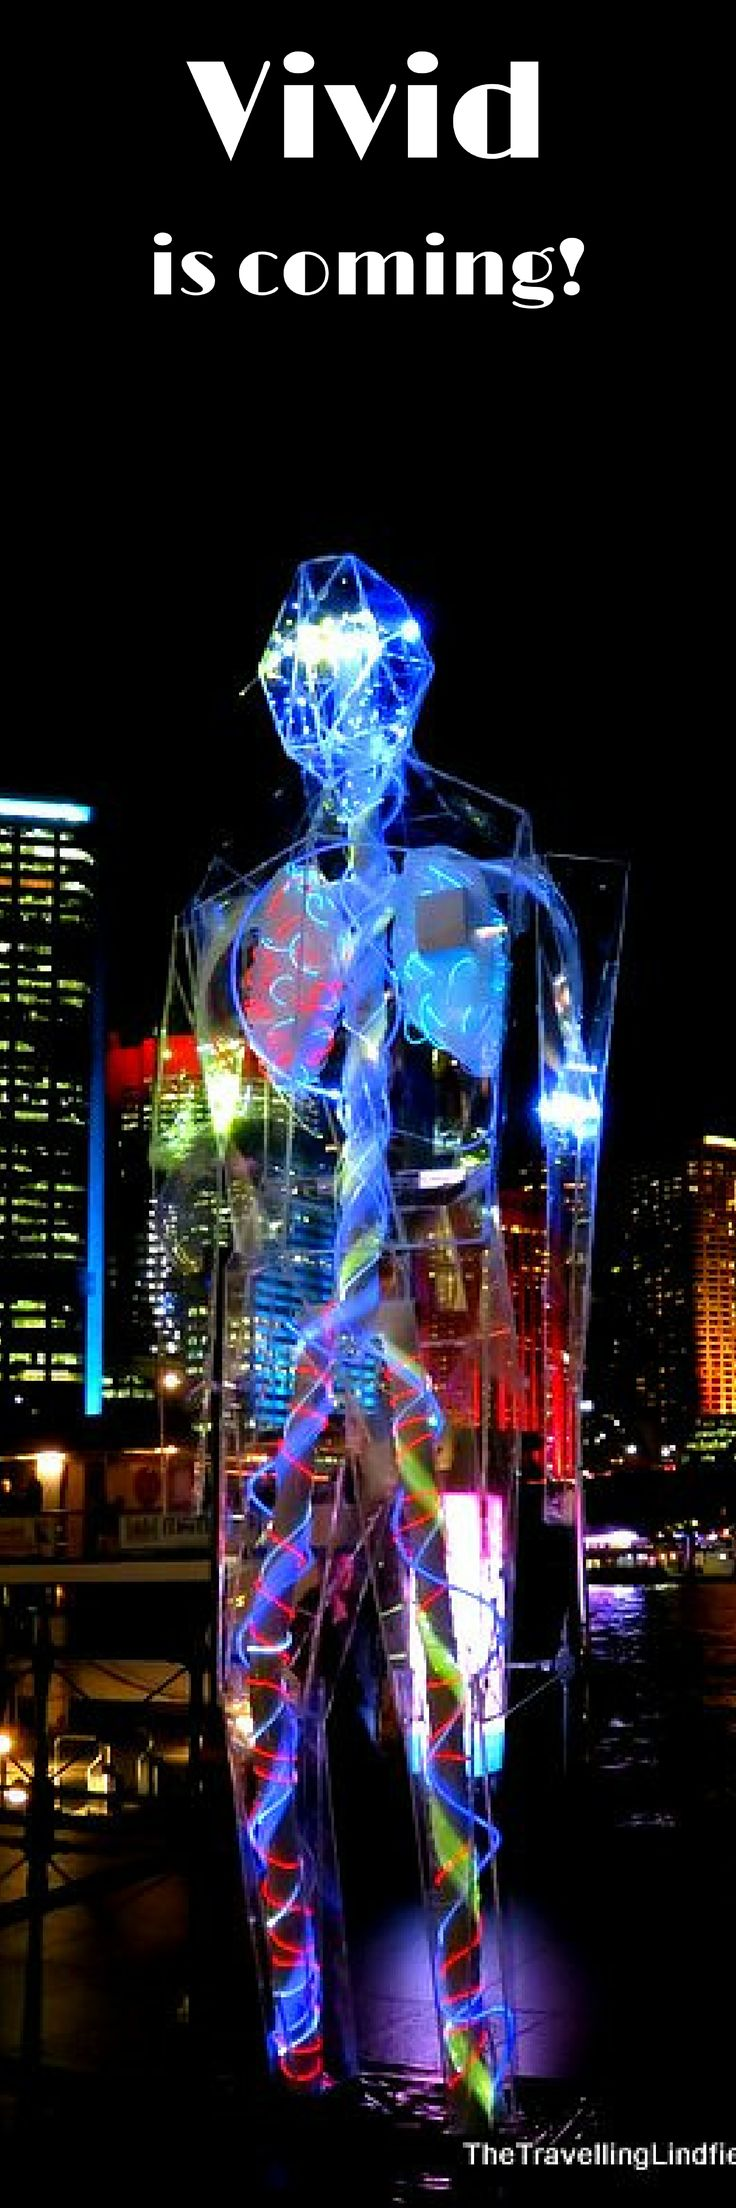 Vivid Sydney 2017 - tips and tricks for getting the best view.